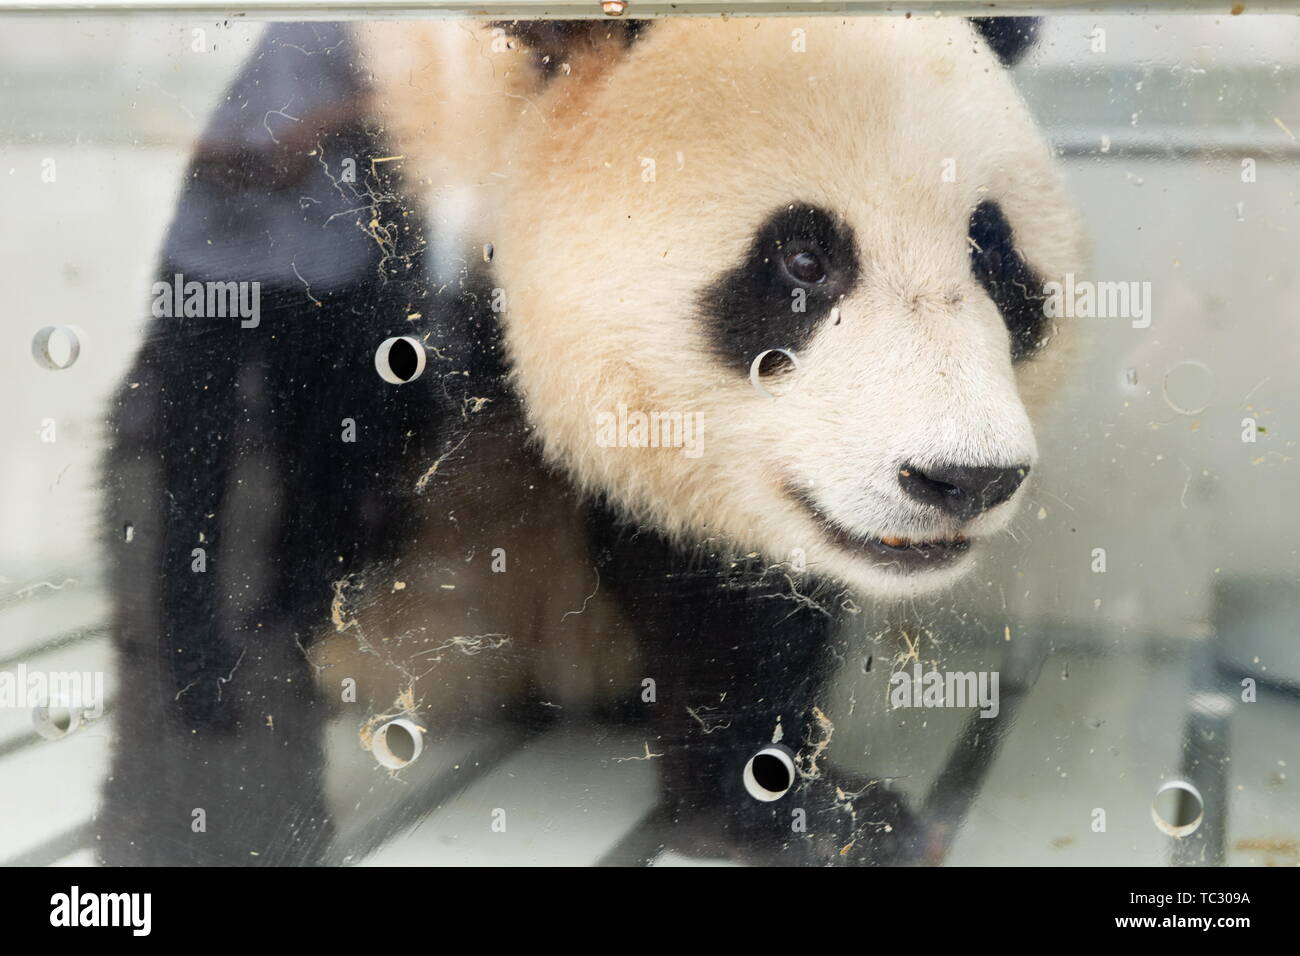 China. 29th Apr, 2019. CHENGDU, SICHUAN PROVINCE, CHINA - JUNE 5, 2019: Pictured in this file image dated April 29, 2019 is a giant panda ahead of being sent to Moscow. 3-year-old Ru Yi and 2-year-old Ding Ding are sent to the Moscow Zoo. The opening of the Moscow Zoo's panda pavilion is to be attended by Russian President Vladimir Putin and Chinese President Xi Jinping. File image/Artyom Ivanov/TASS Credit: ITAR-TASS News Agency/Alamy Live News - Stock Image